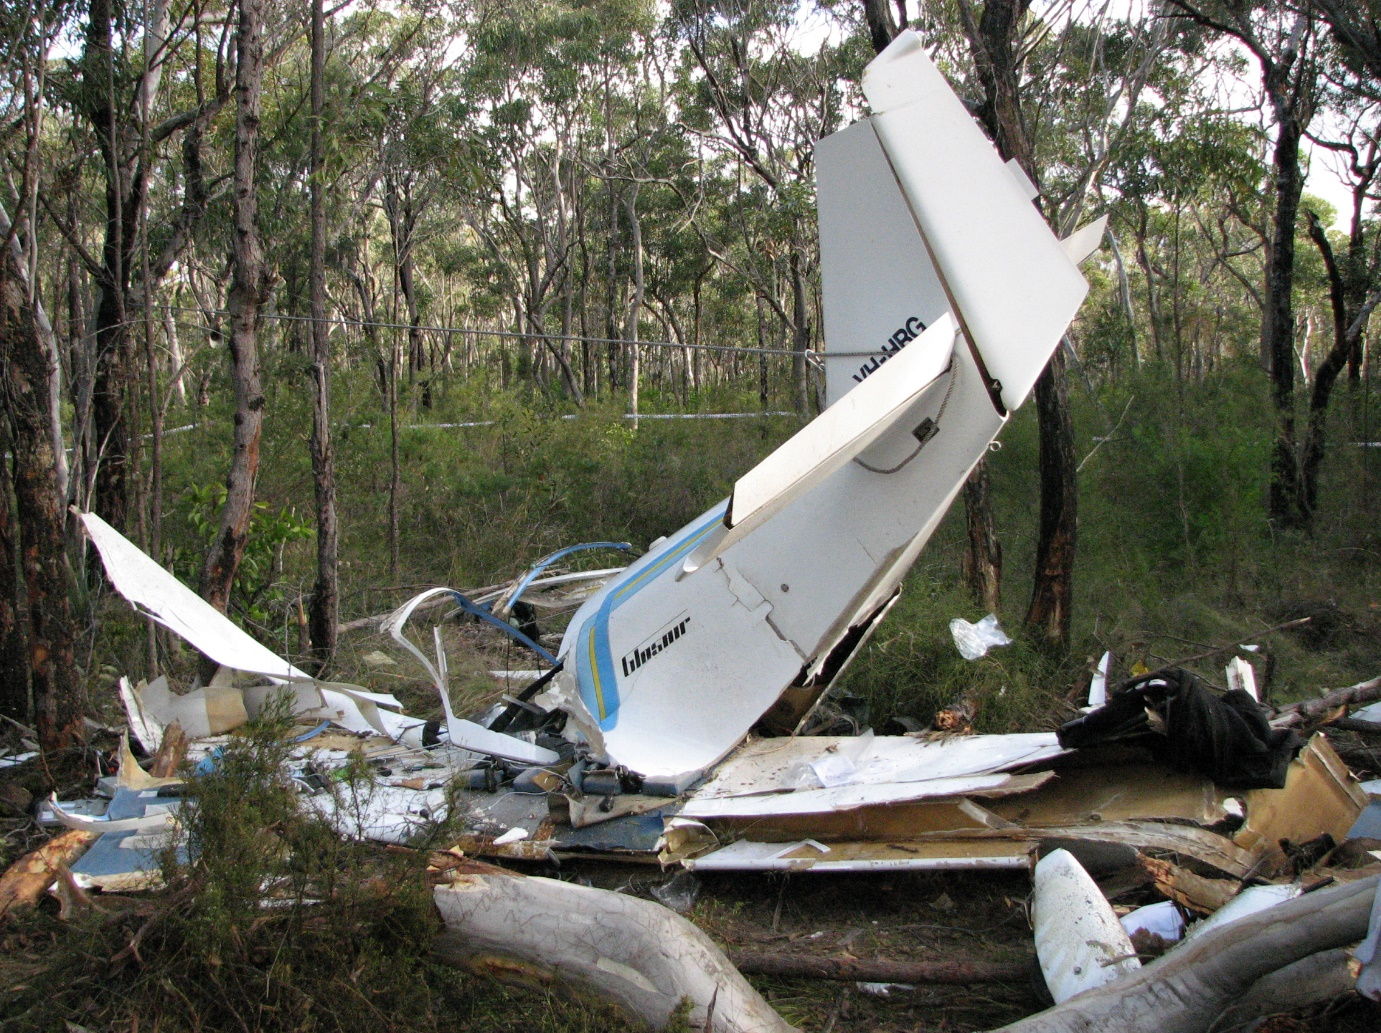 Figure 2: Aircraft wreckage. Note that the tail empennage is secured in an elevated position by being tied off to a nearby tree